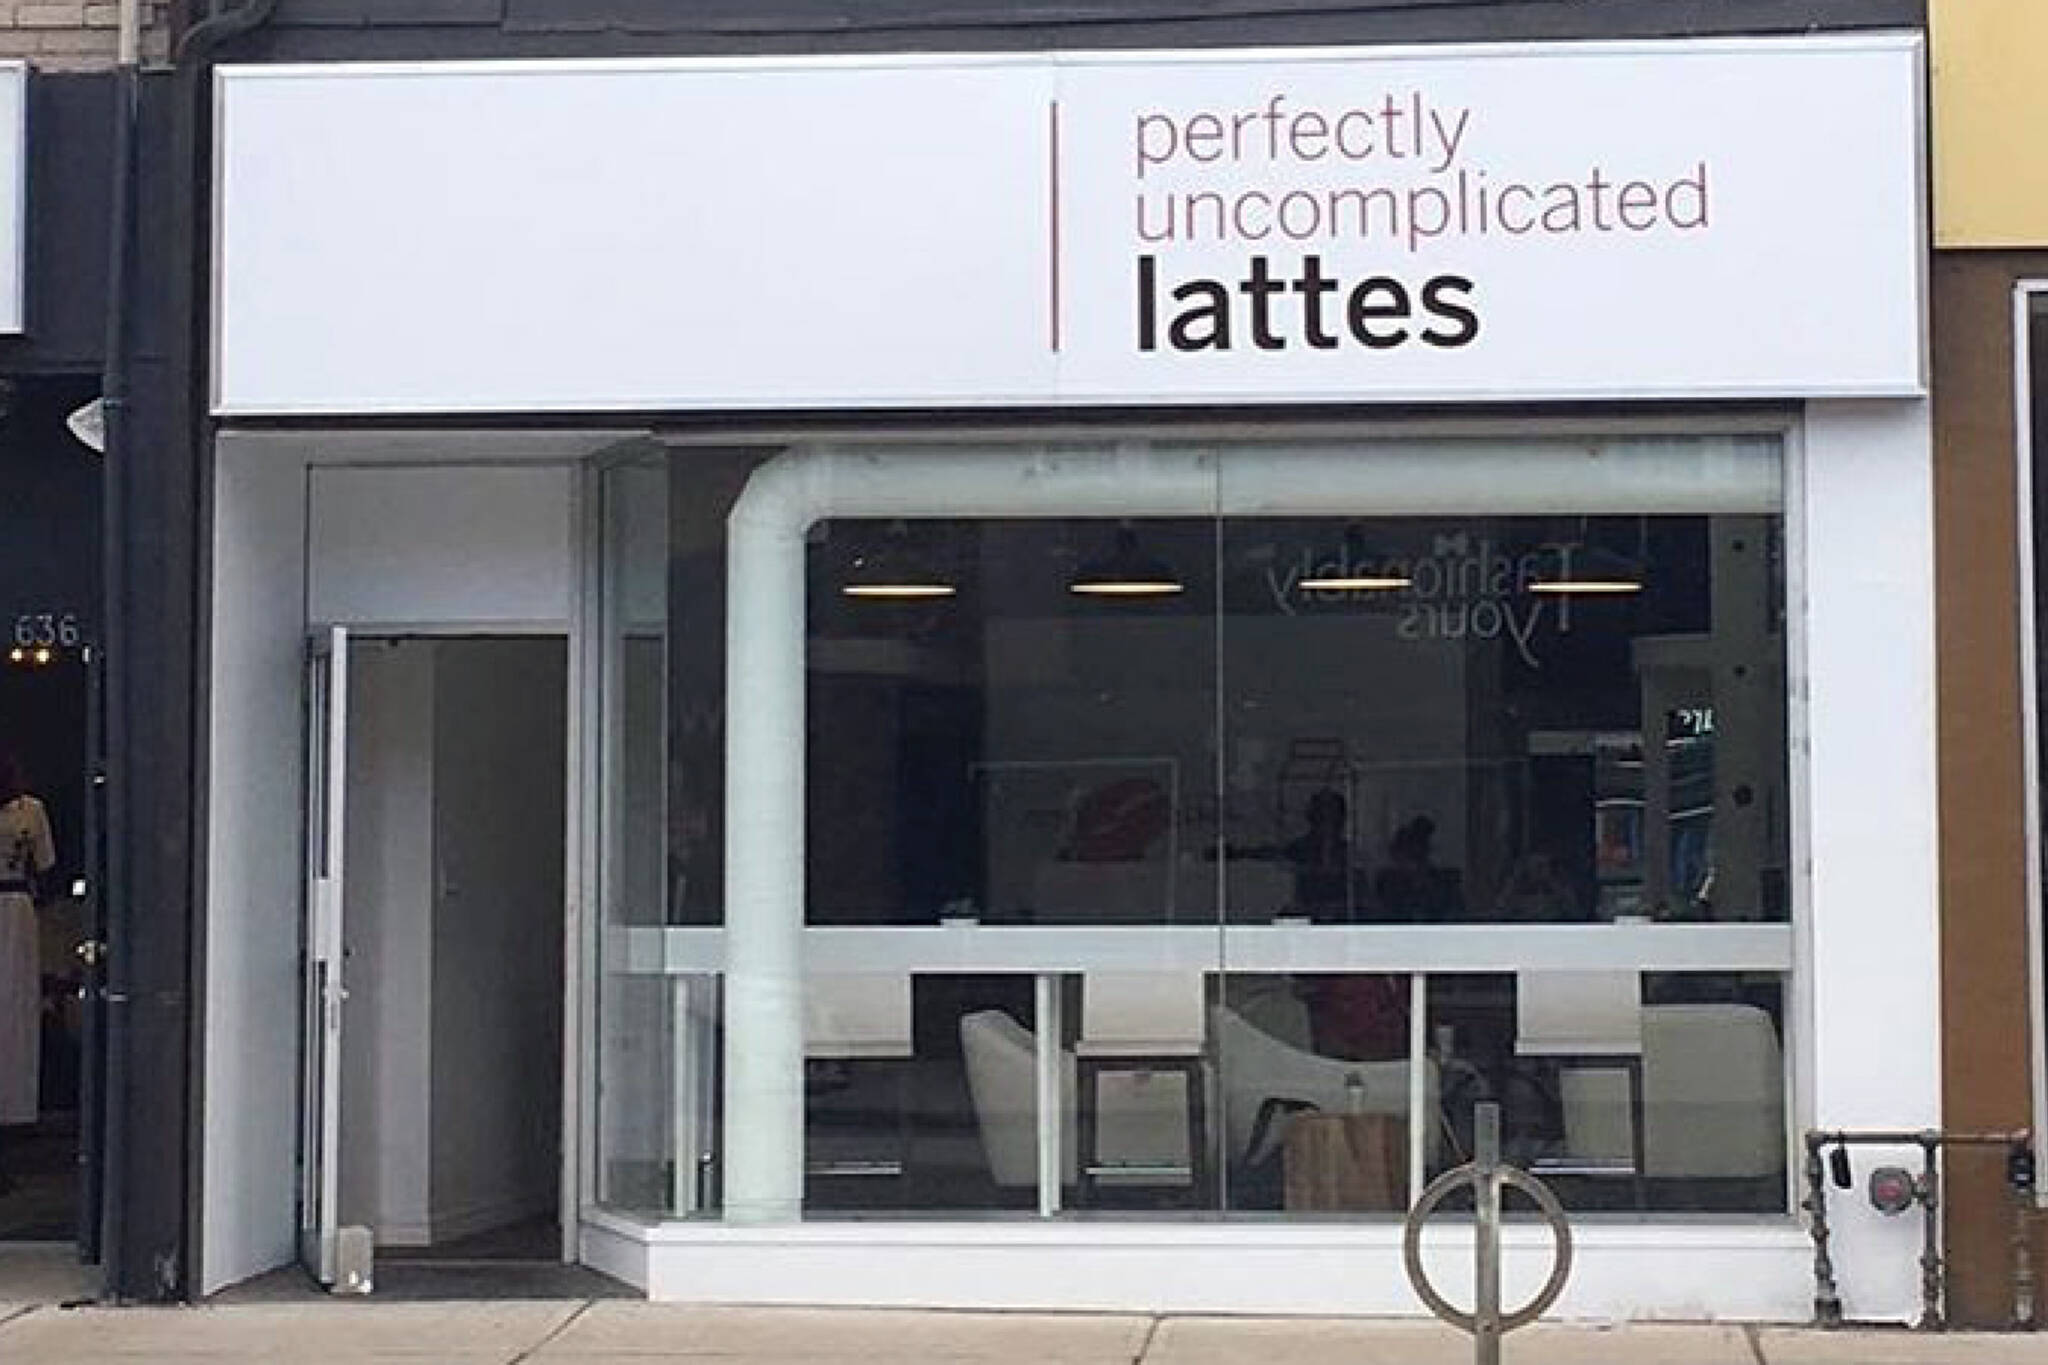 perfectly uncomplicated lattes